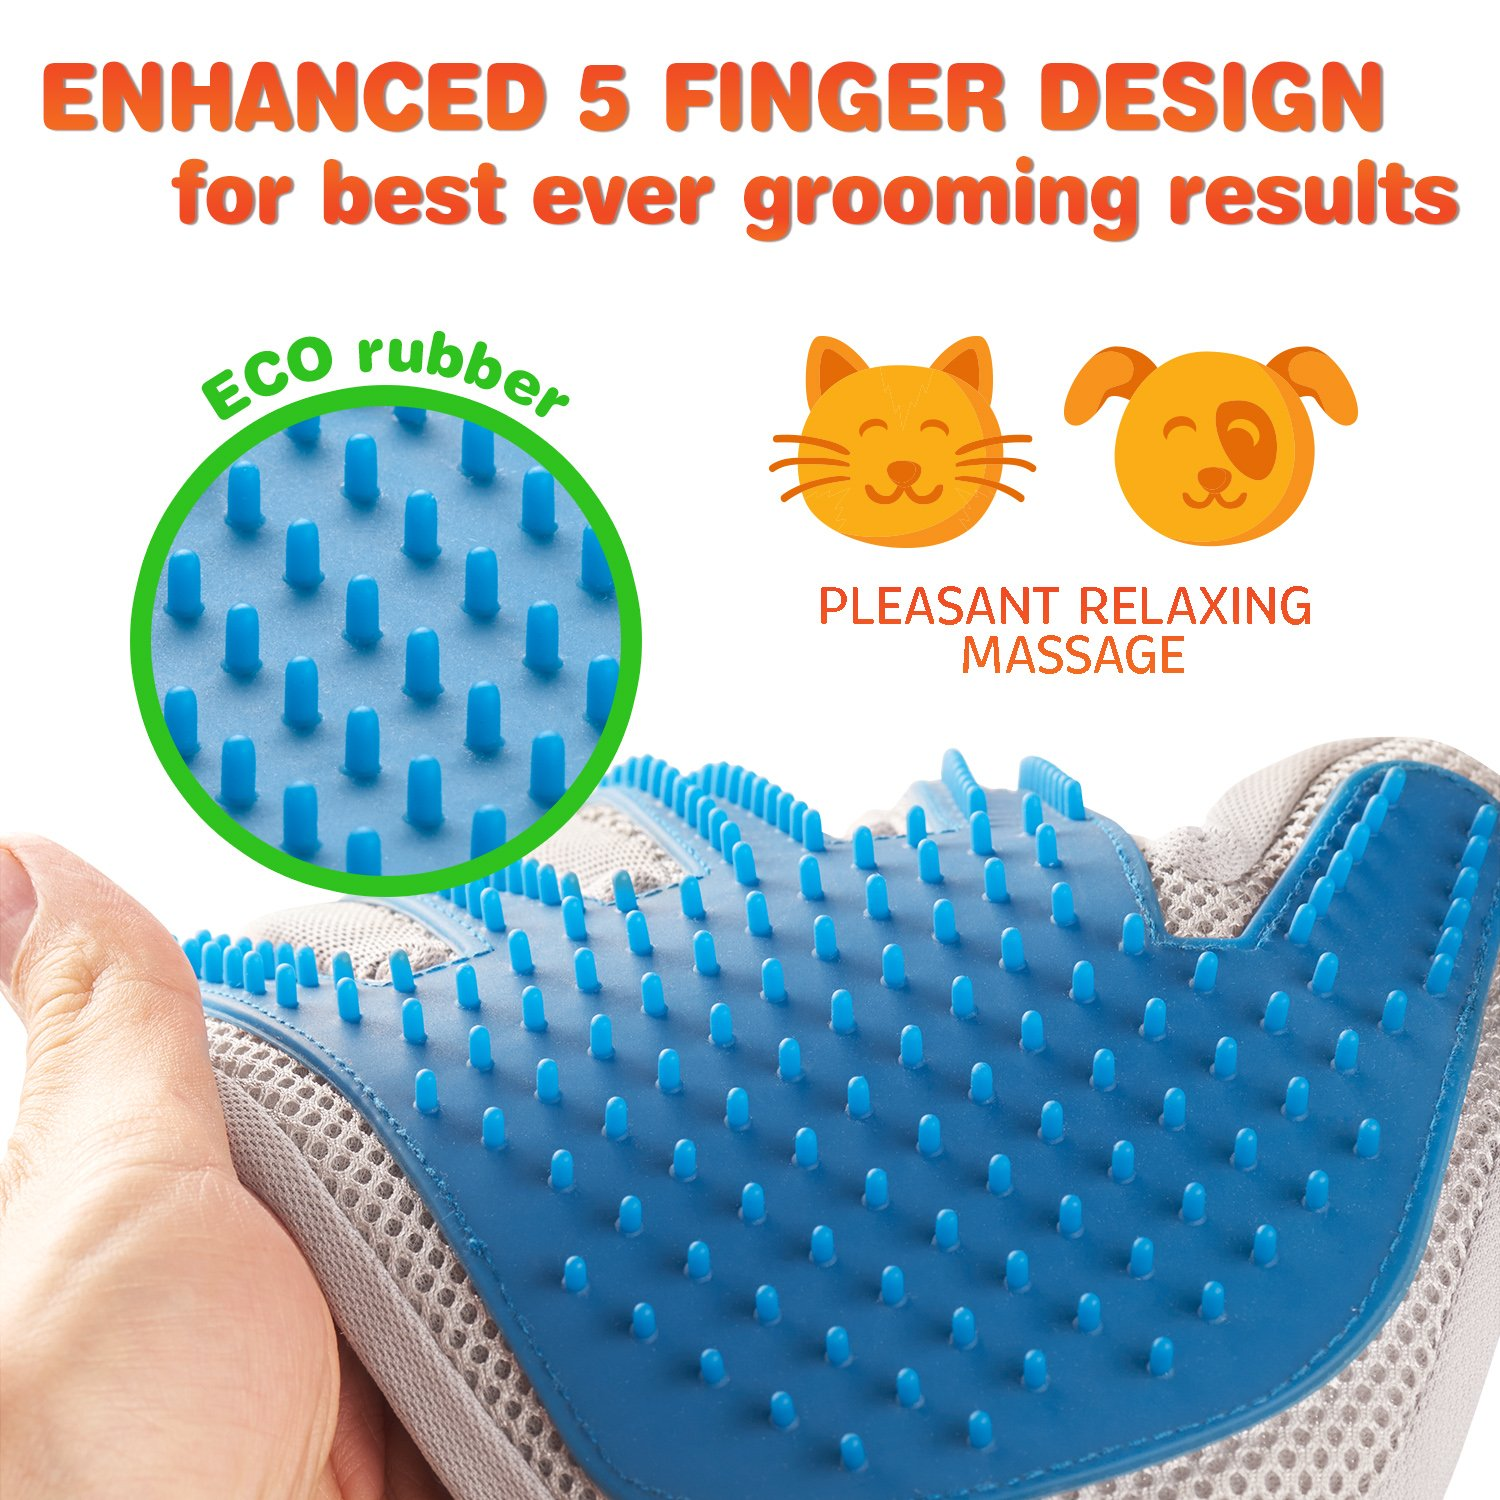 Pet Grooming Glove - Enhanced Five Finger Design - for Cats, Dogs & Horses - Long & Short Fur - Gentle De-Shedding Brush - Your Pet Will Love It (Right) by Pat Your Pet (Image #3)